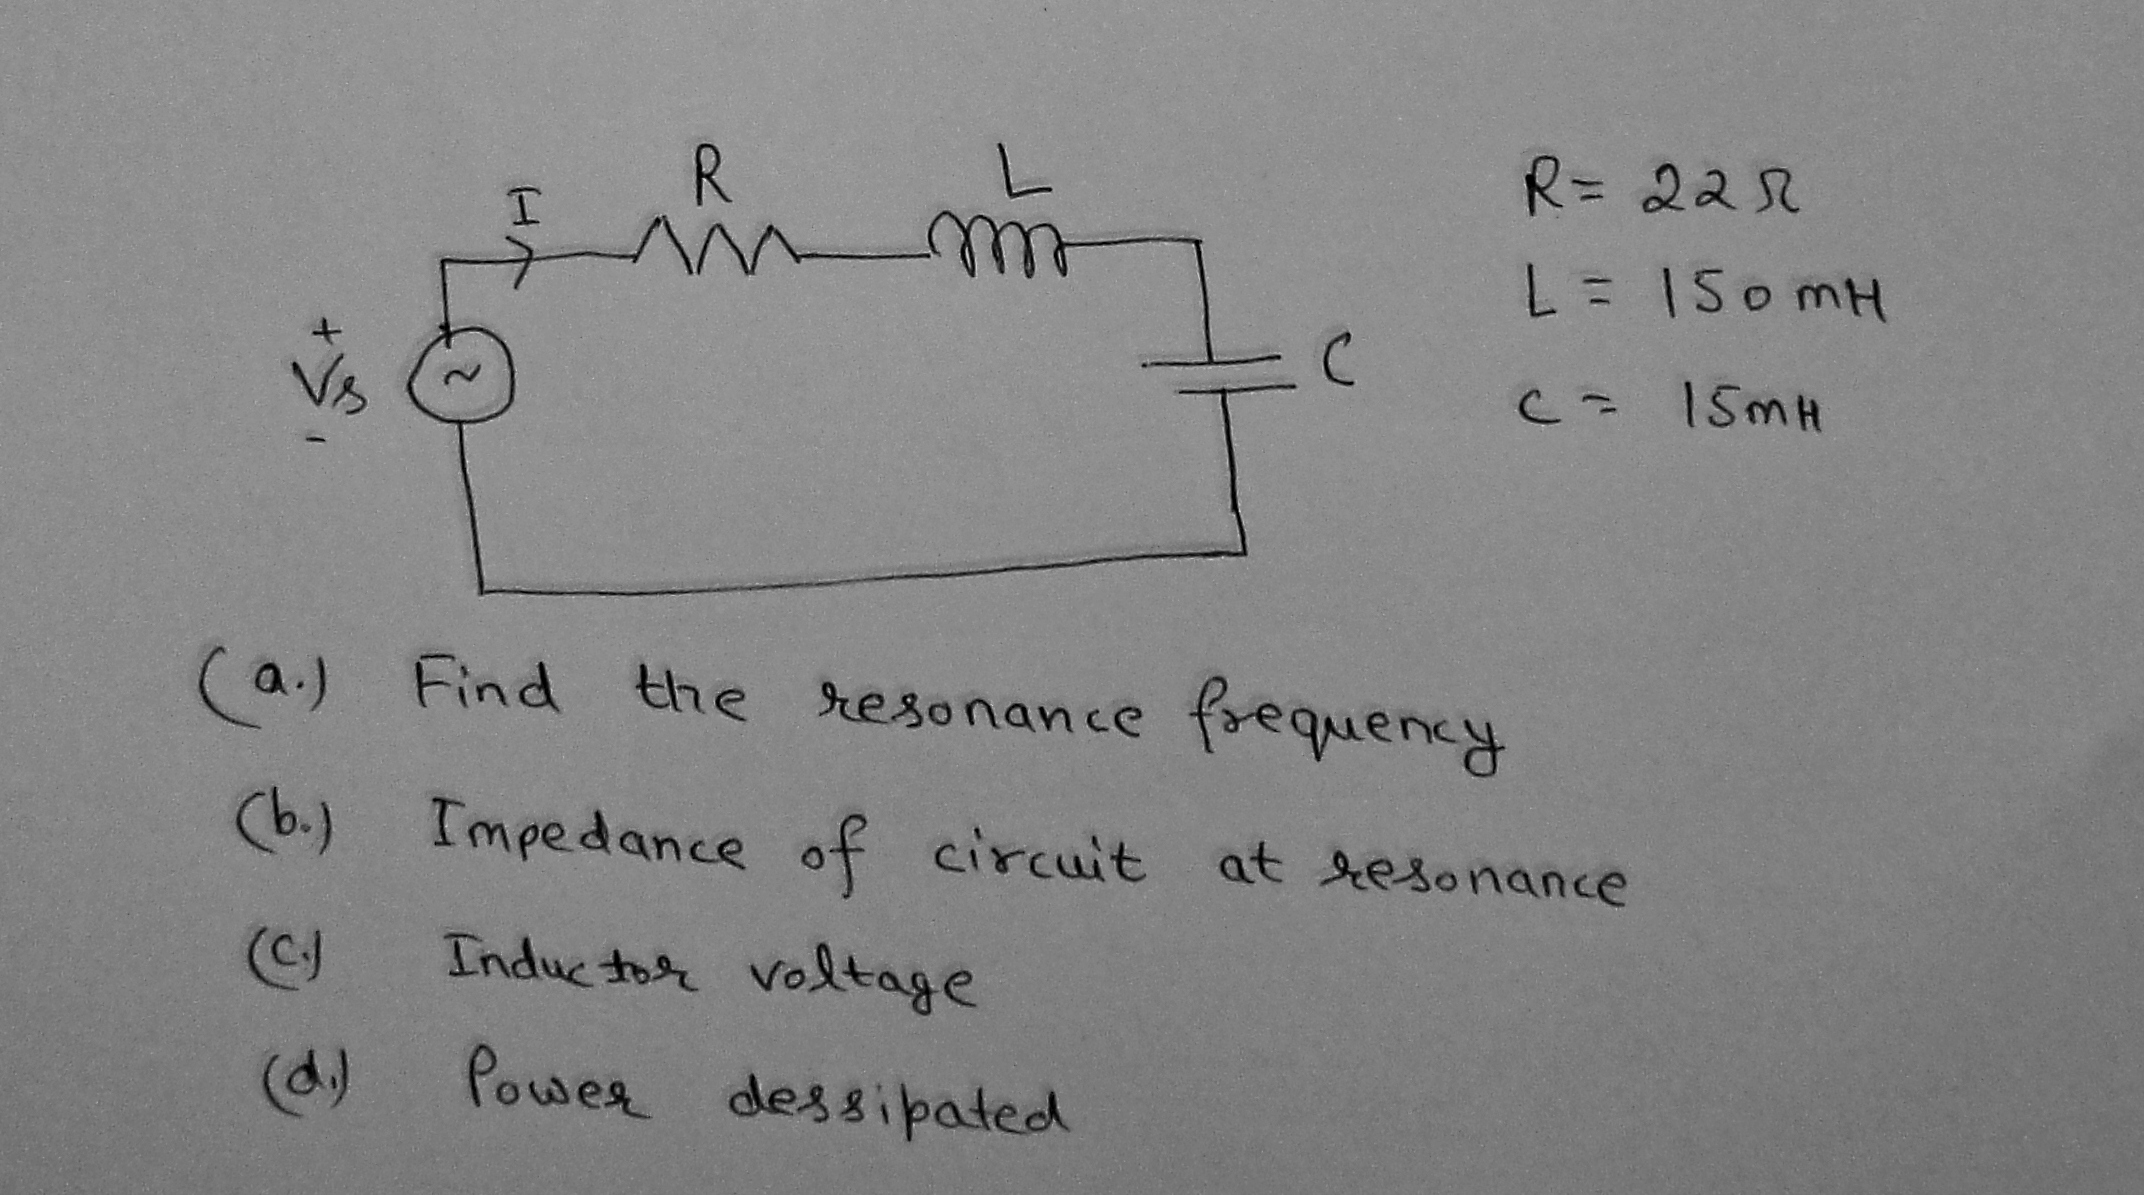 Find the resonance frequency Impedance of circuit